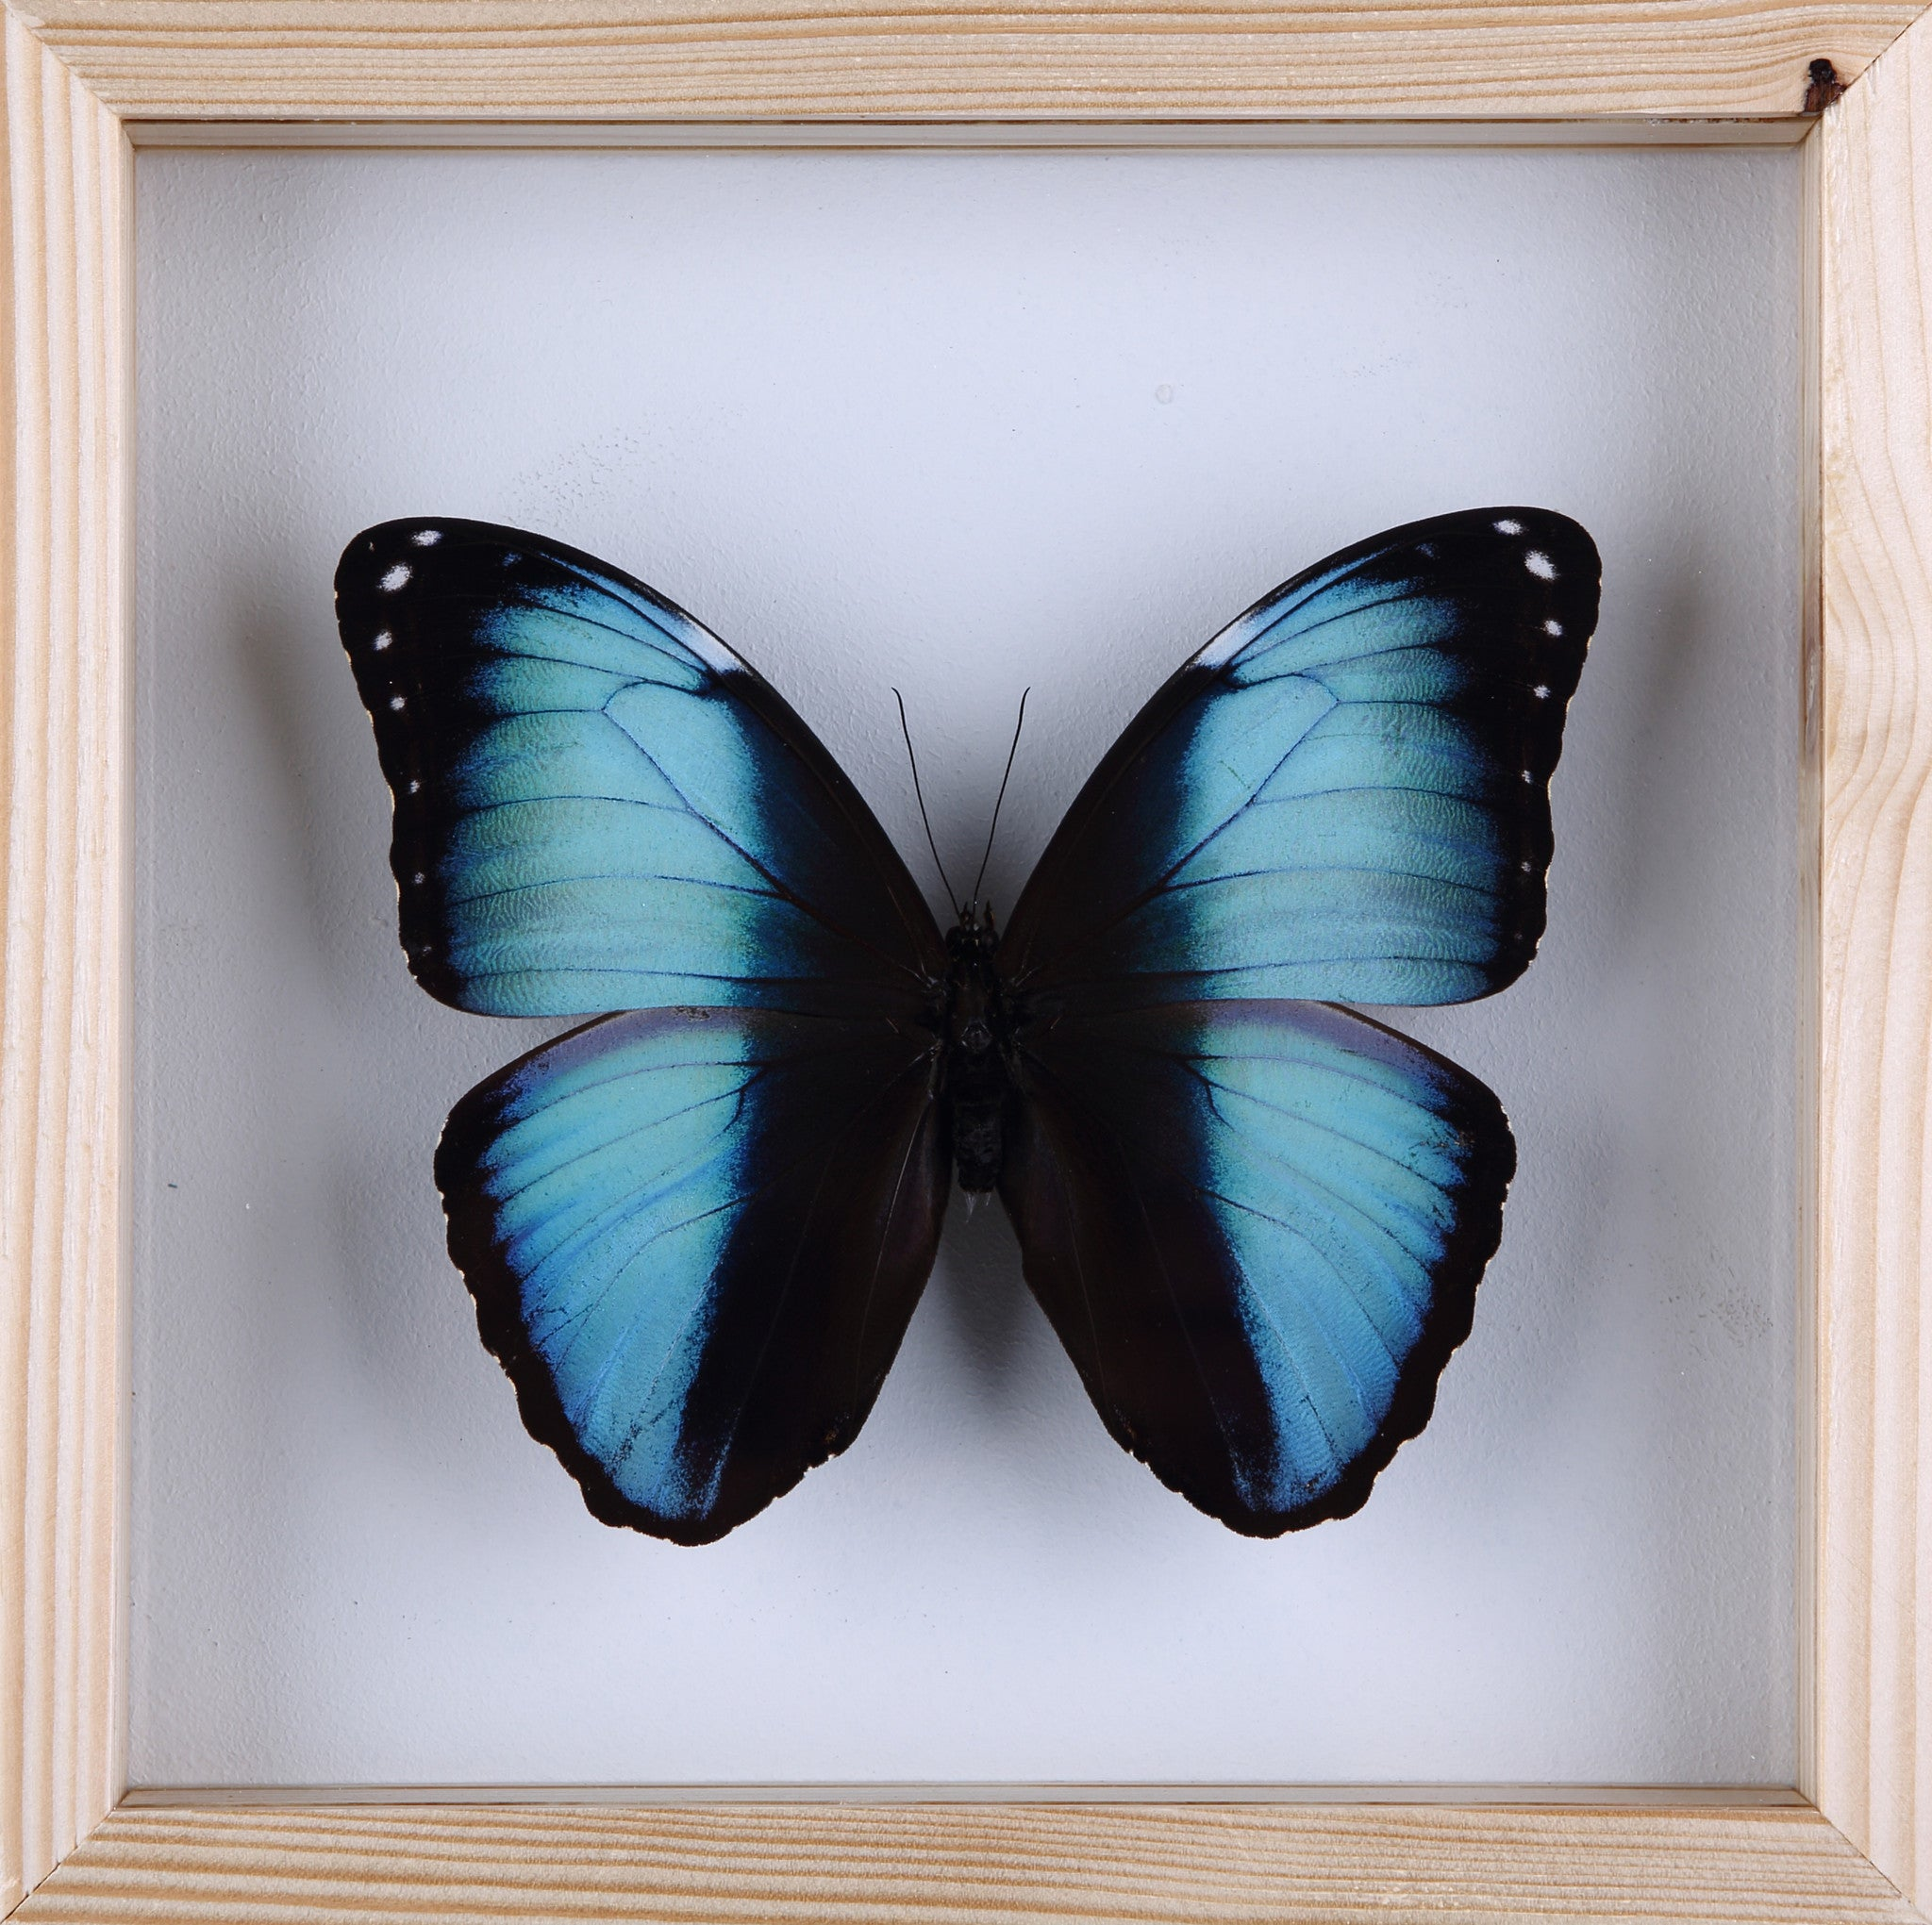 ... The Achilles Morpho Butterfly   Framed Butterfly   See Through Glass  Frame   Natural History Direct